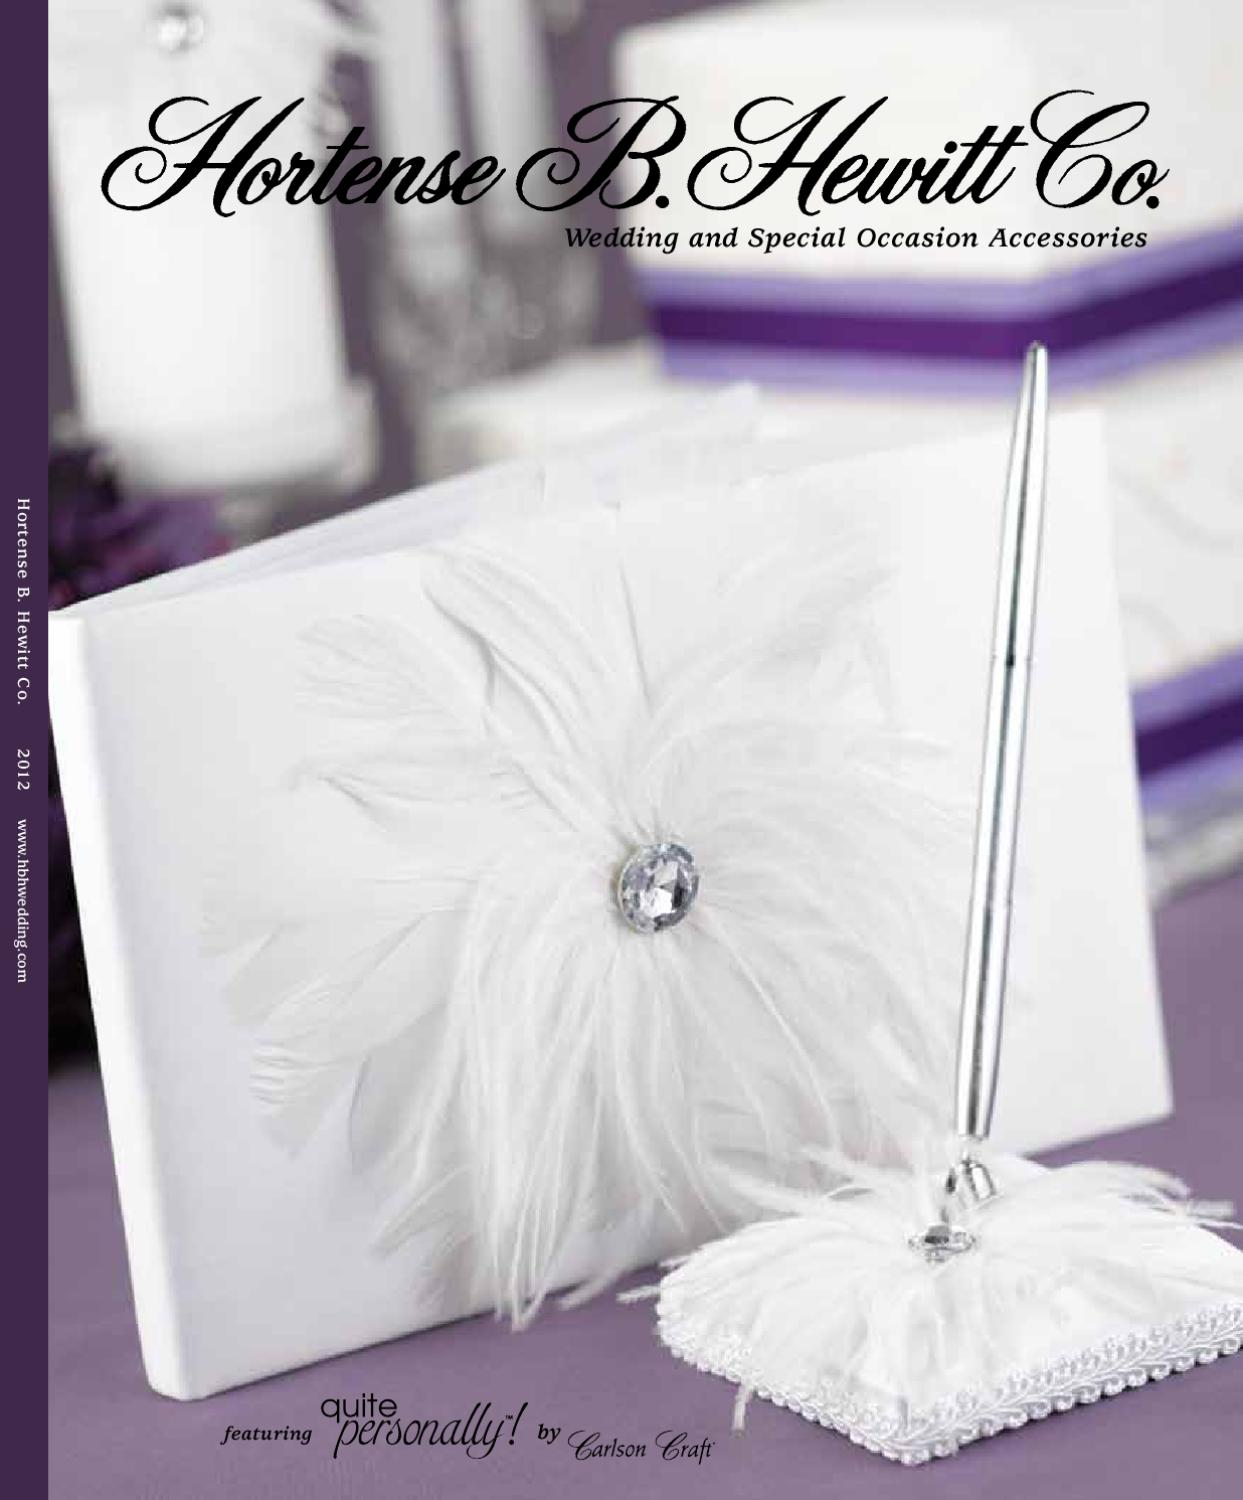 Can Coolers Gift Set Hewitt Wedding Accessories Mr and Mrs Hortense B